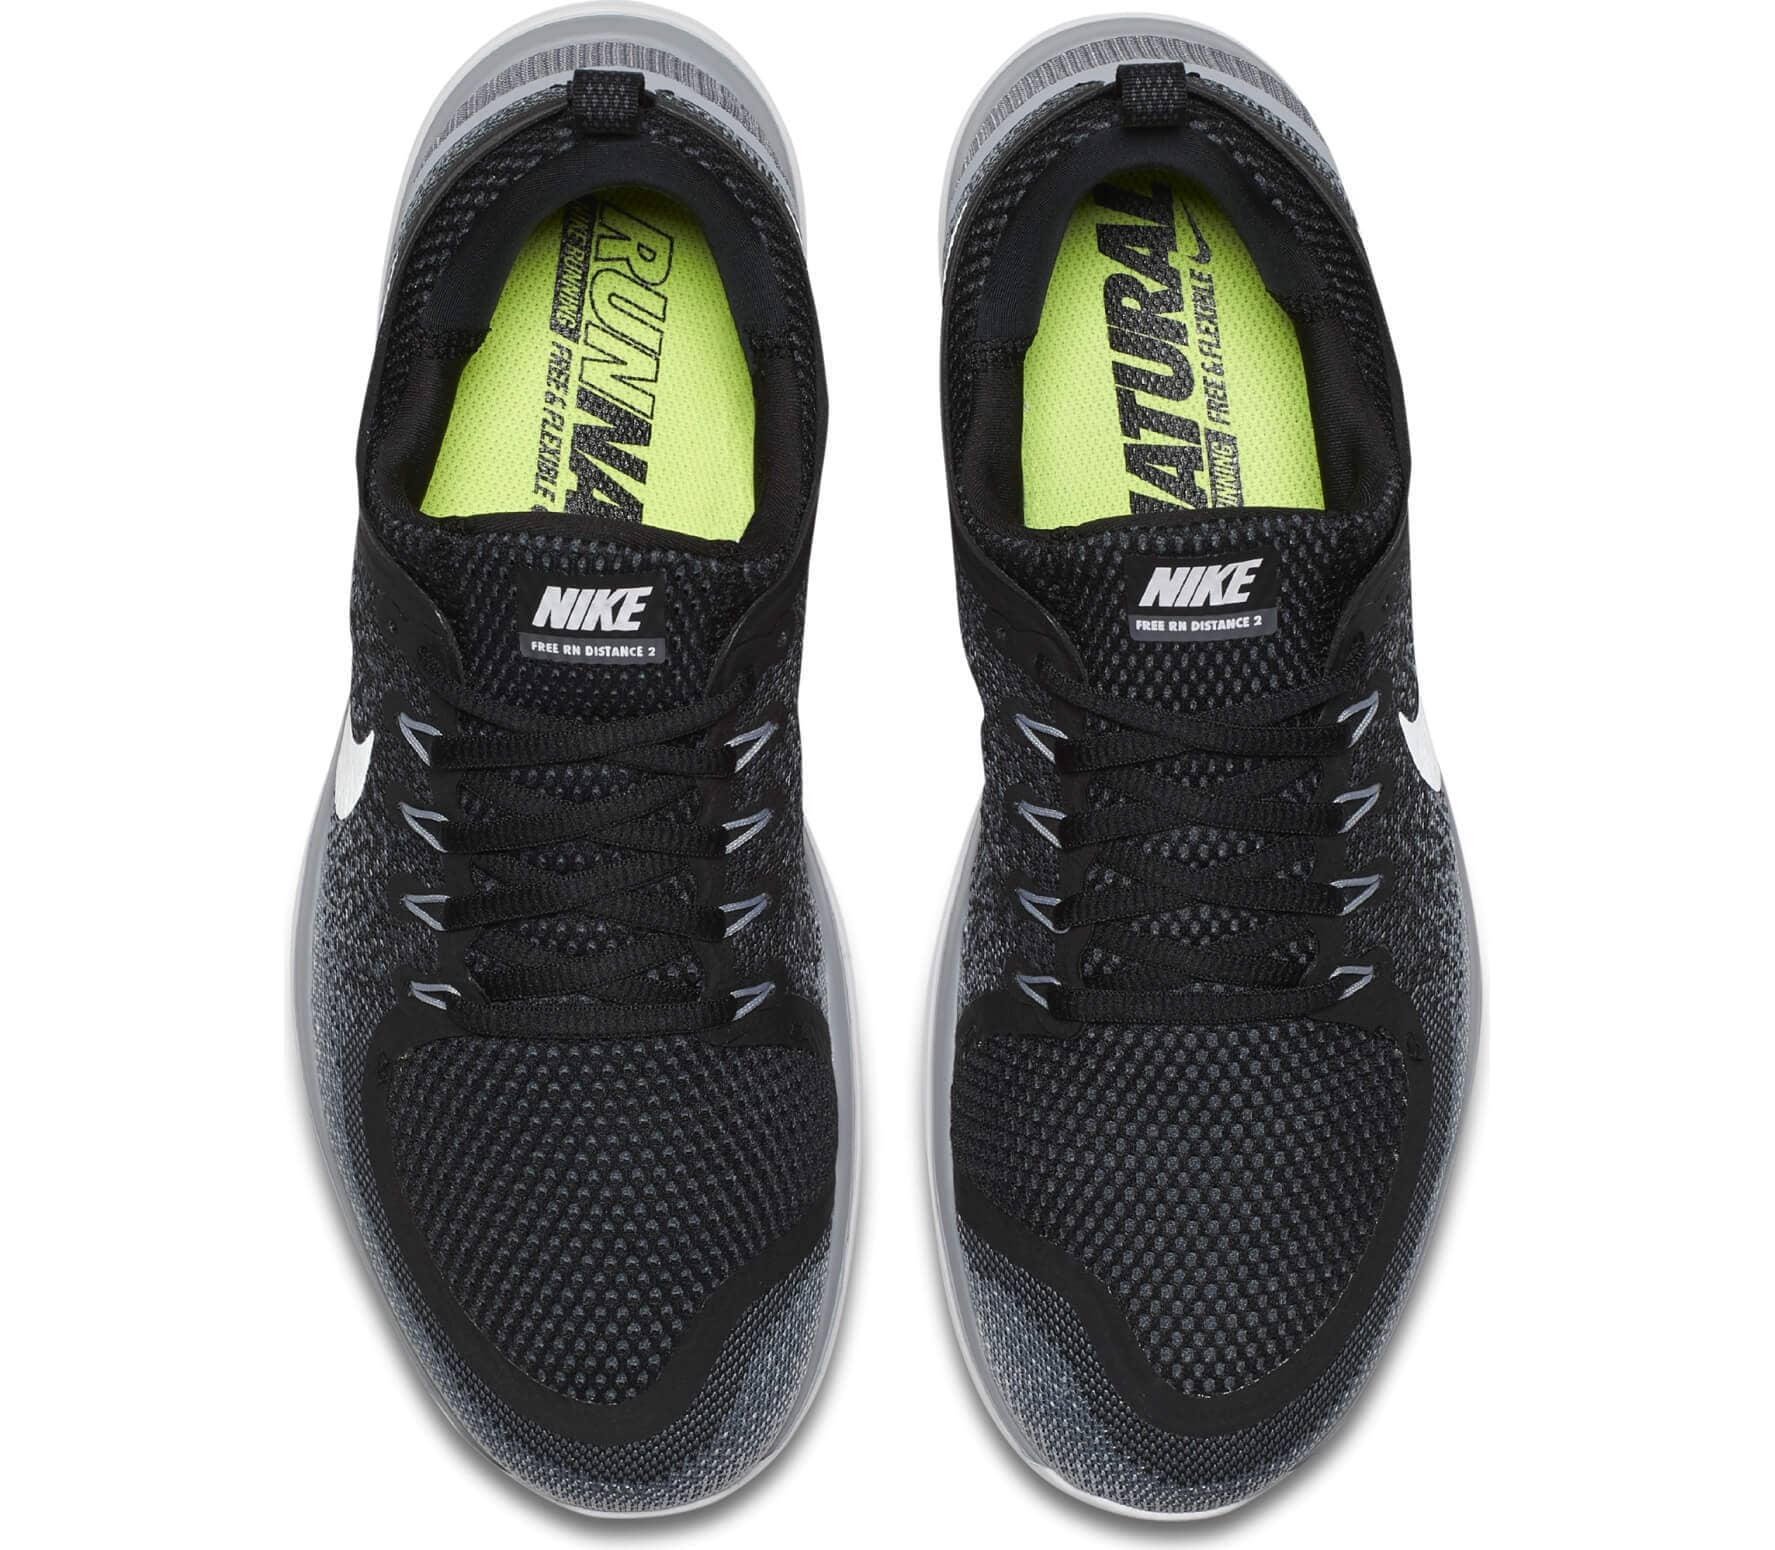 new style 41788 dded1 Nike - Free RN Distance 2 zapatillas de running para hombre (negro blanco)